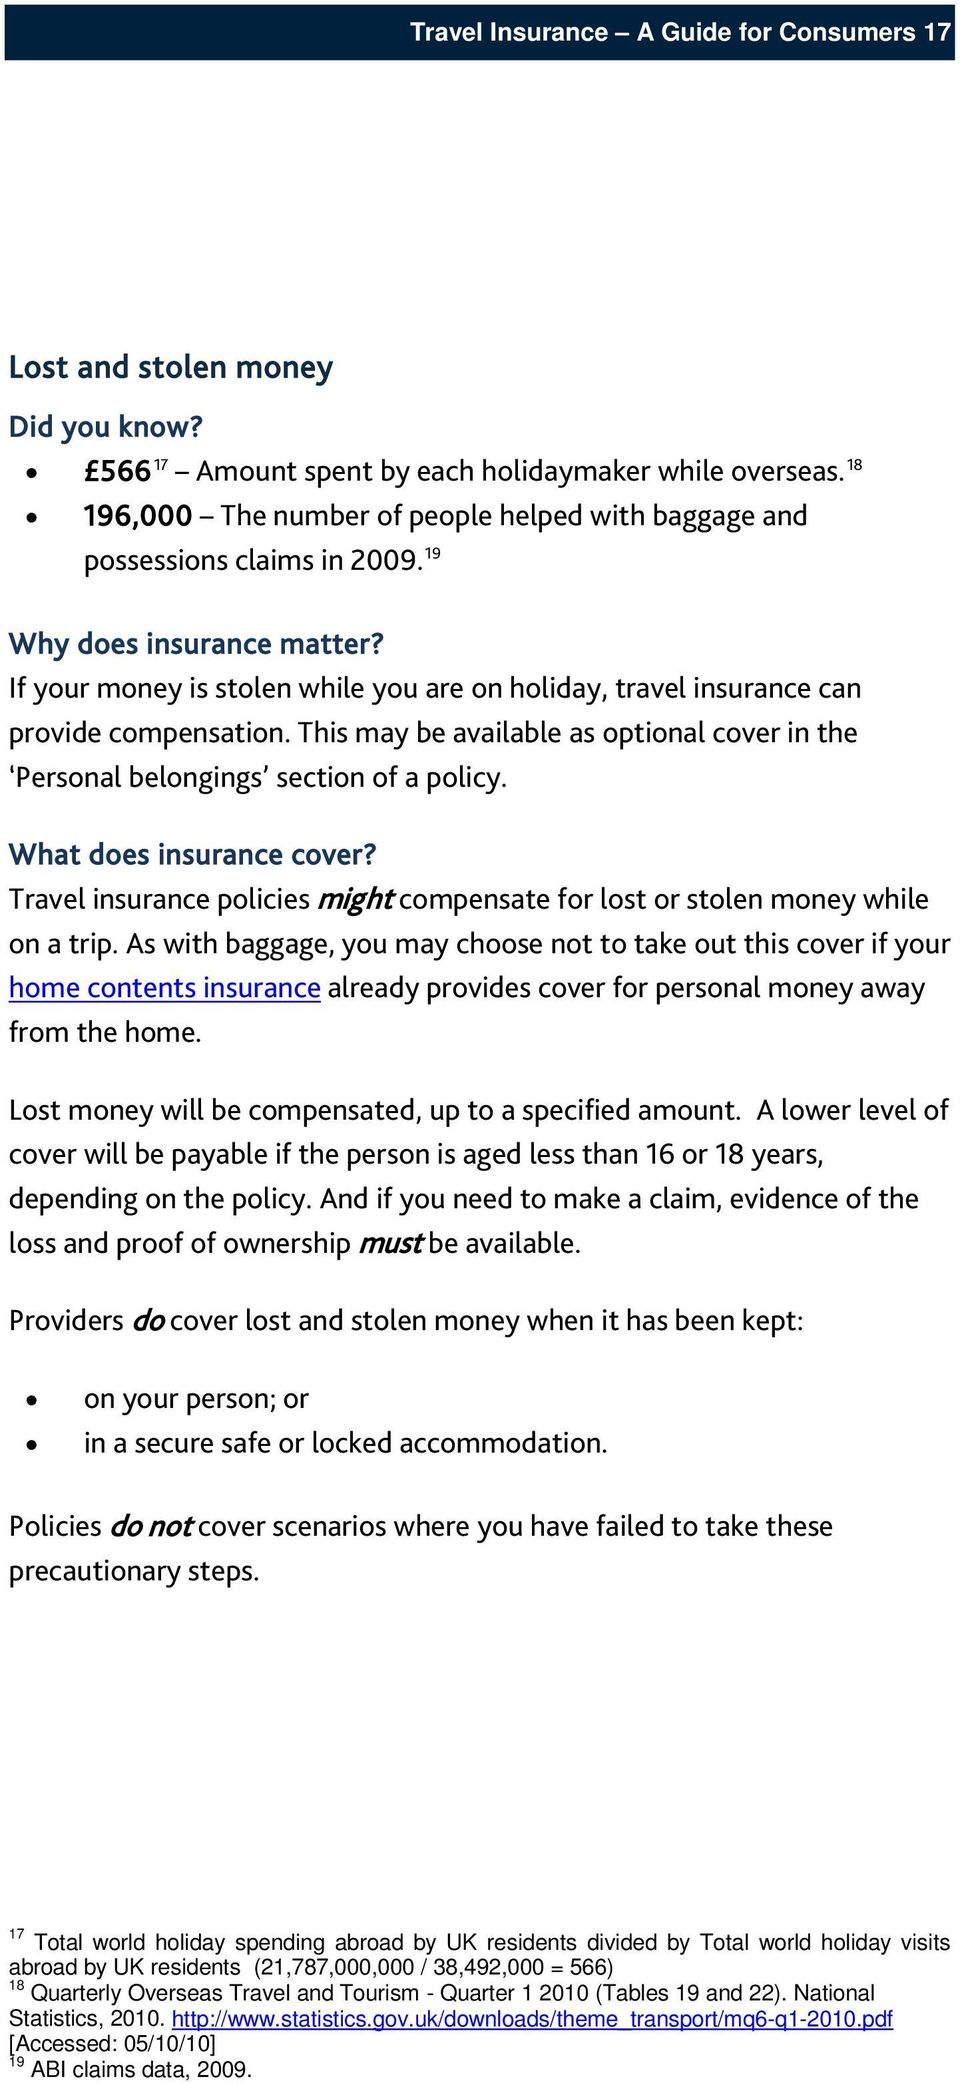 If your money is stolen while you are on holiday, travel insurance can provide compensation. This may be available as optional cover in the Personal belongings section of a policy.